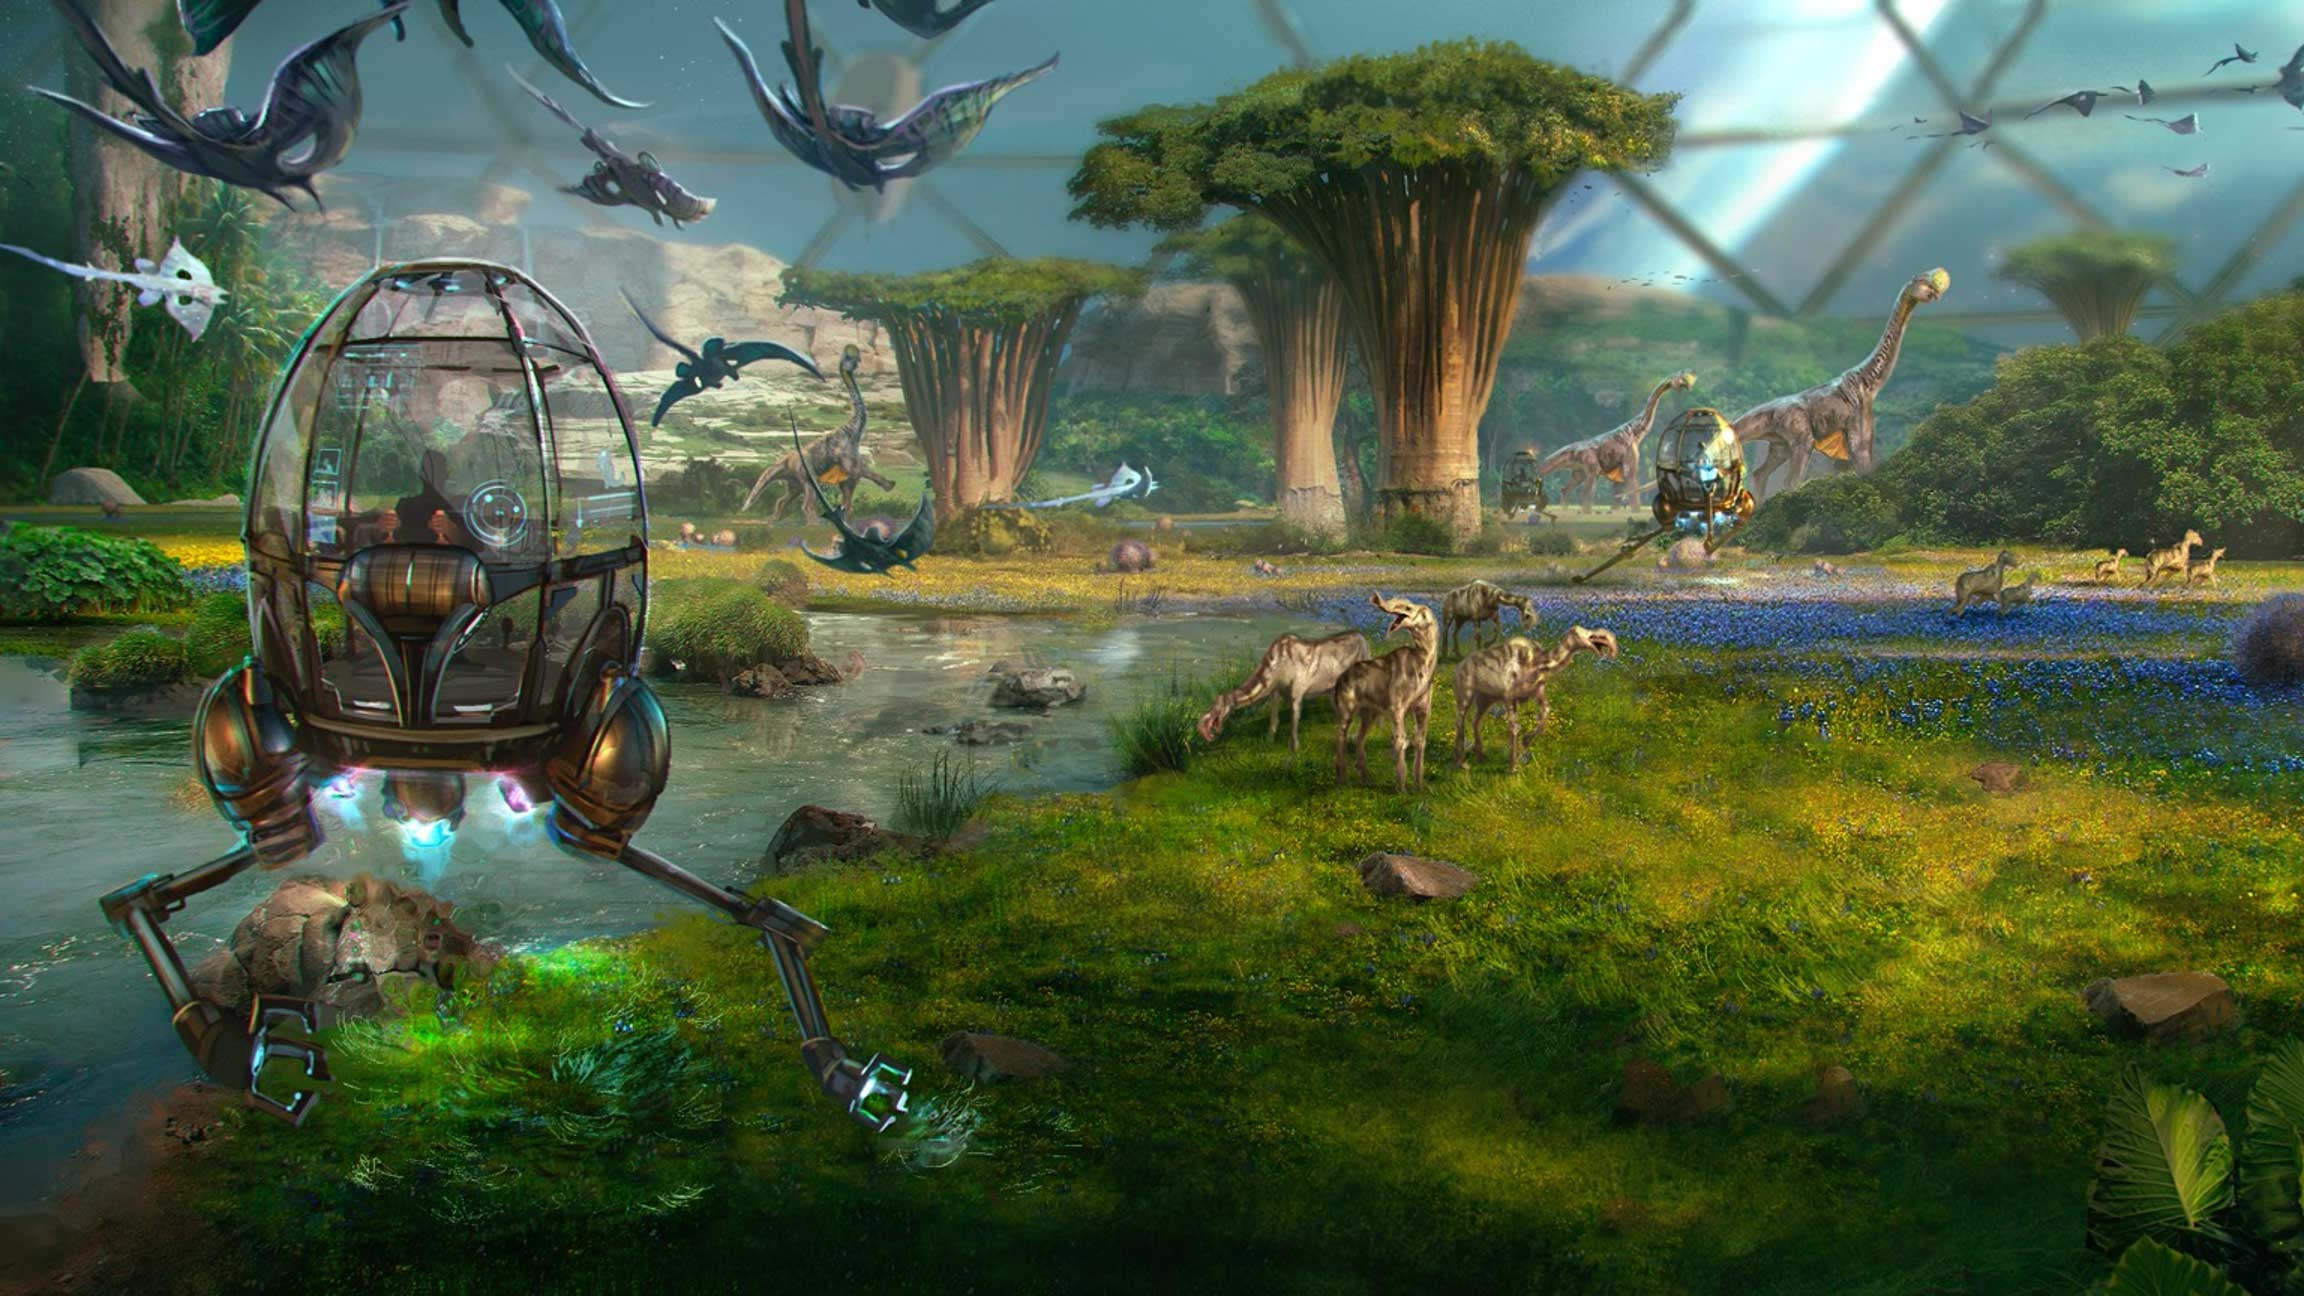 VR users travel around an Alien Zoo landscape in clear pods